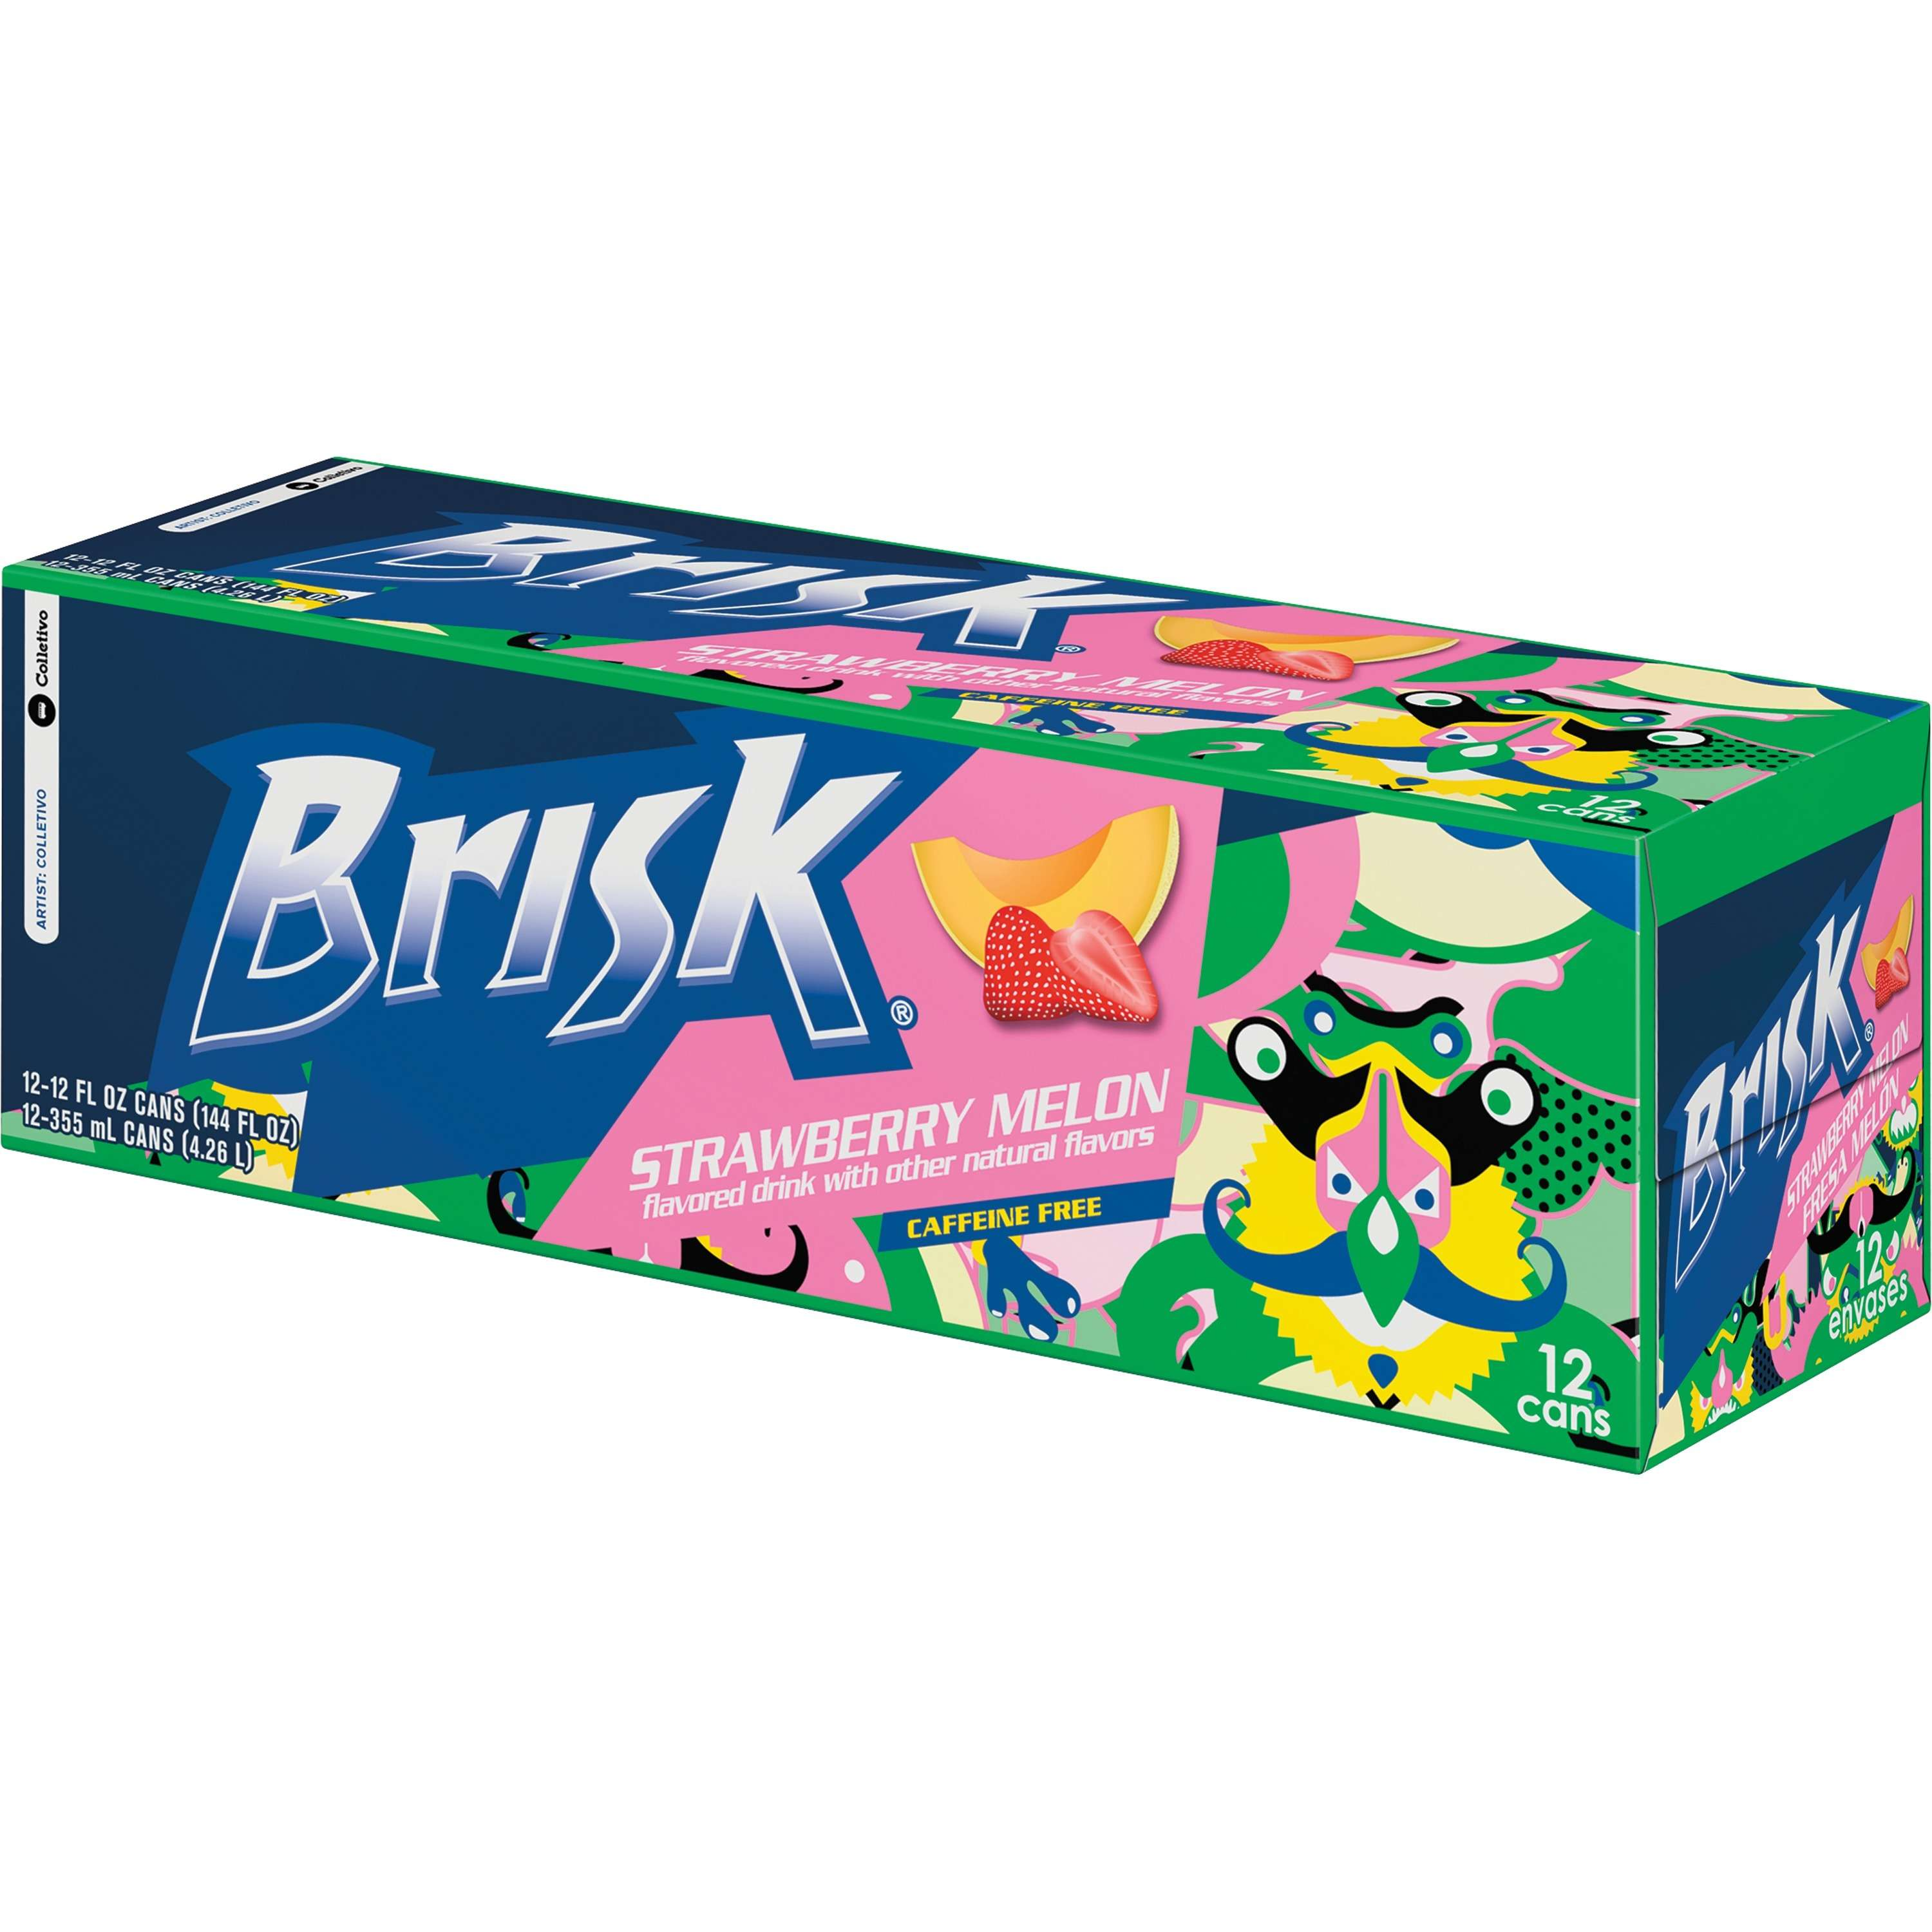 Brisk® Melon Strawberry Flavored Drink 12-12 fl. oz. Cans